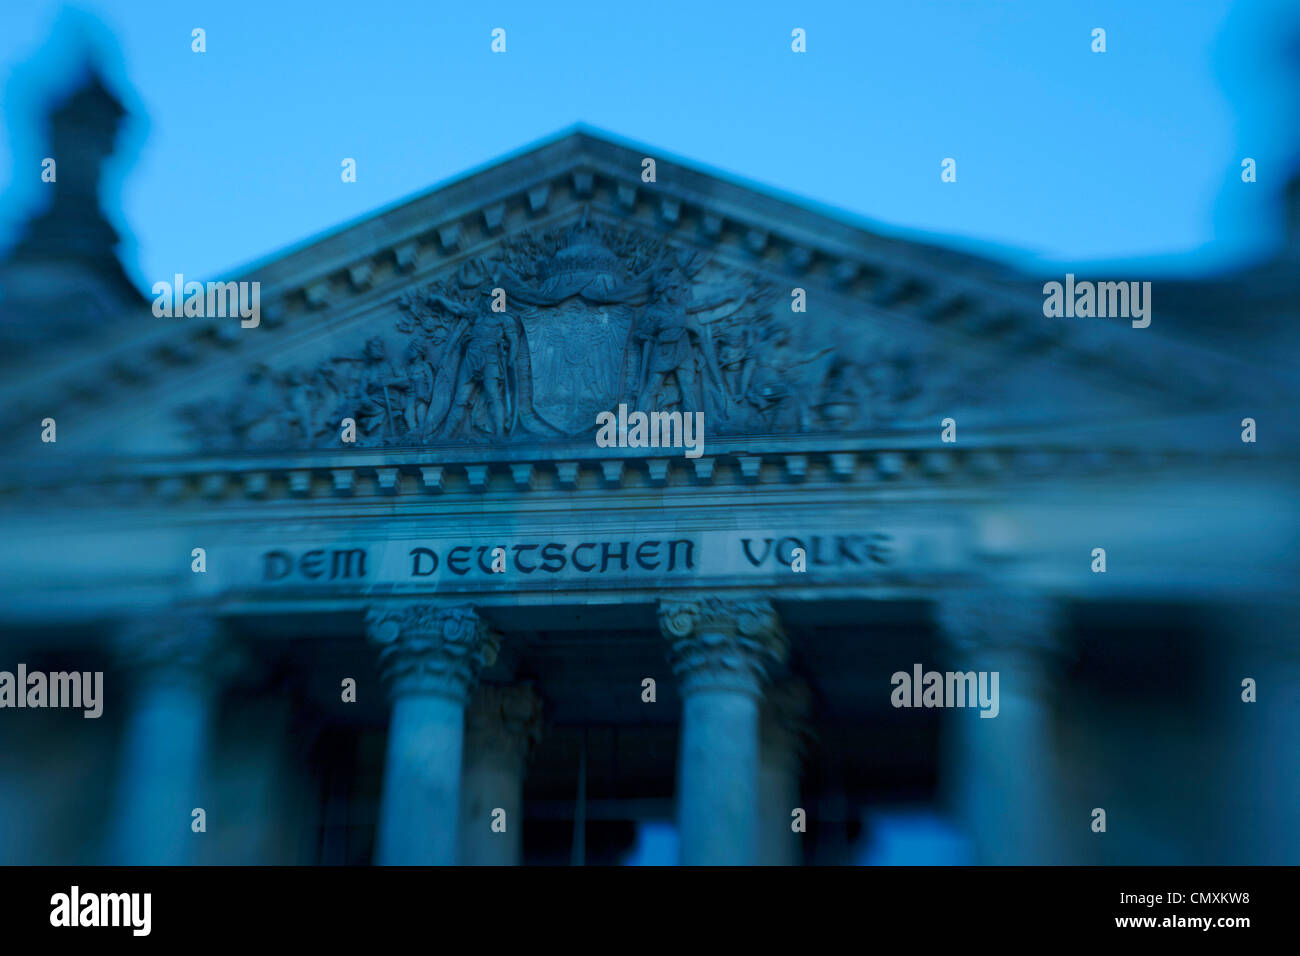 Berlin, Reichstag, dome by Norman Forster - Stock Image